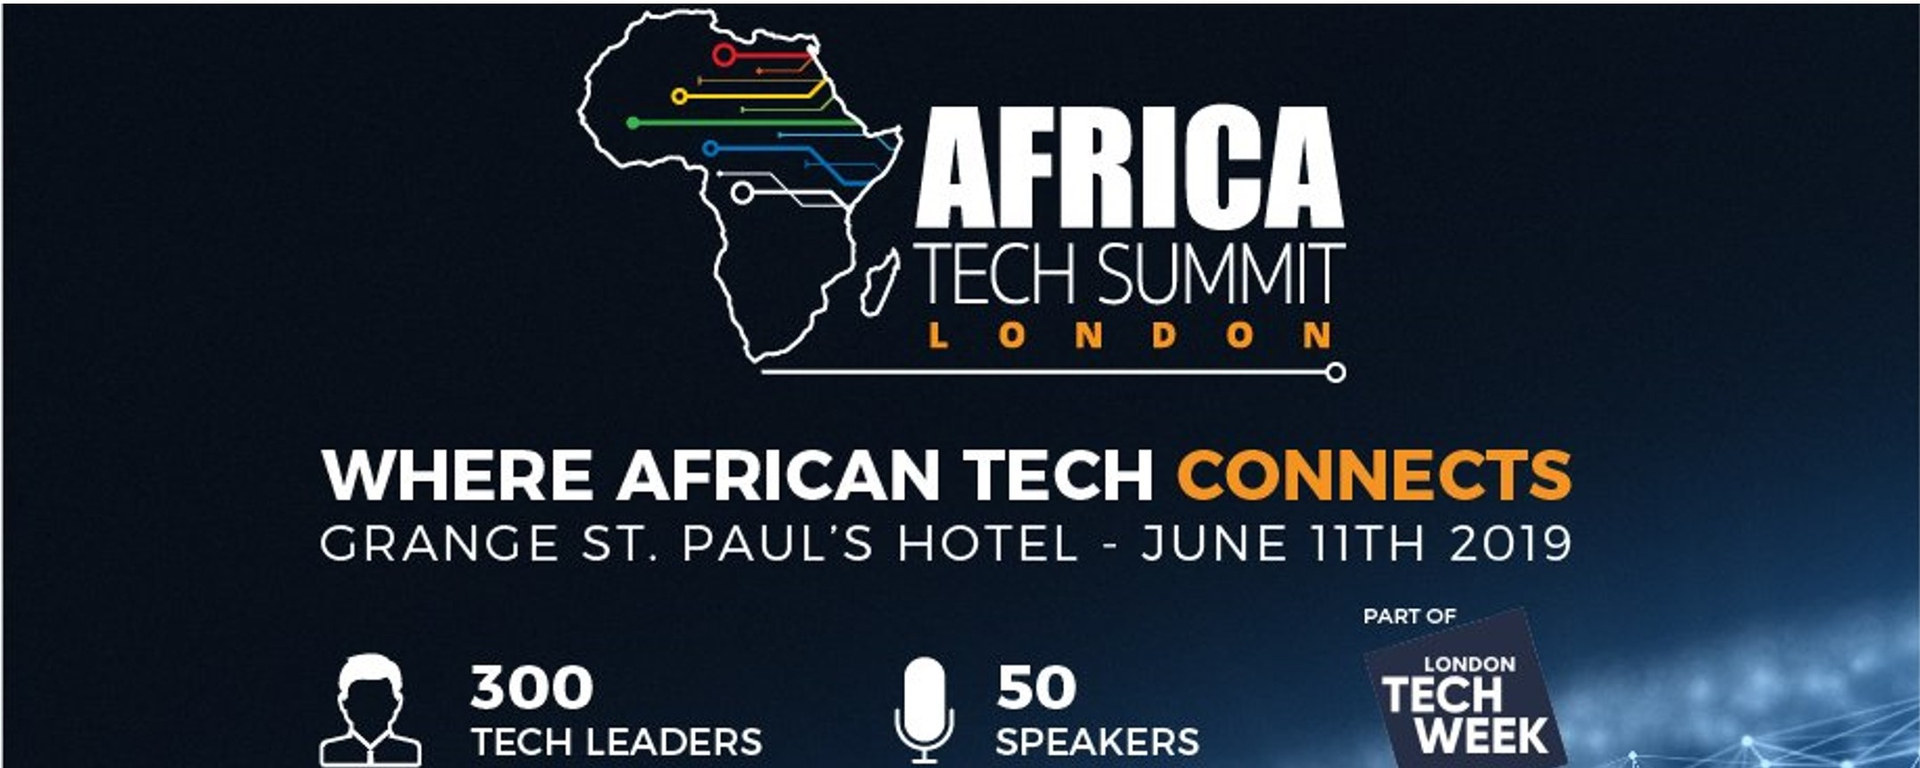 Africa Tech Summit - Africa Tech Summit London 2019 Movemeback African event cover image